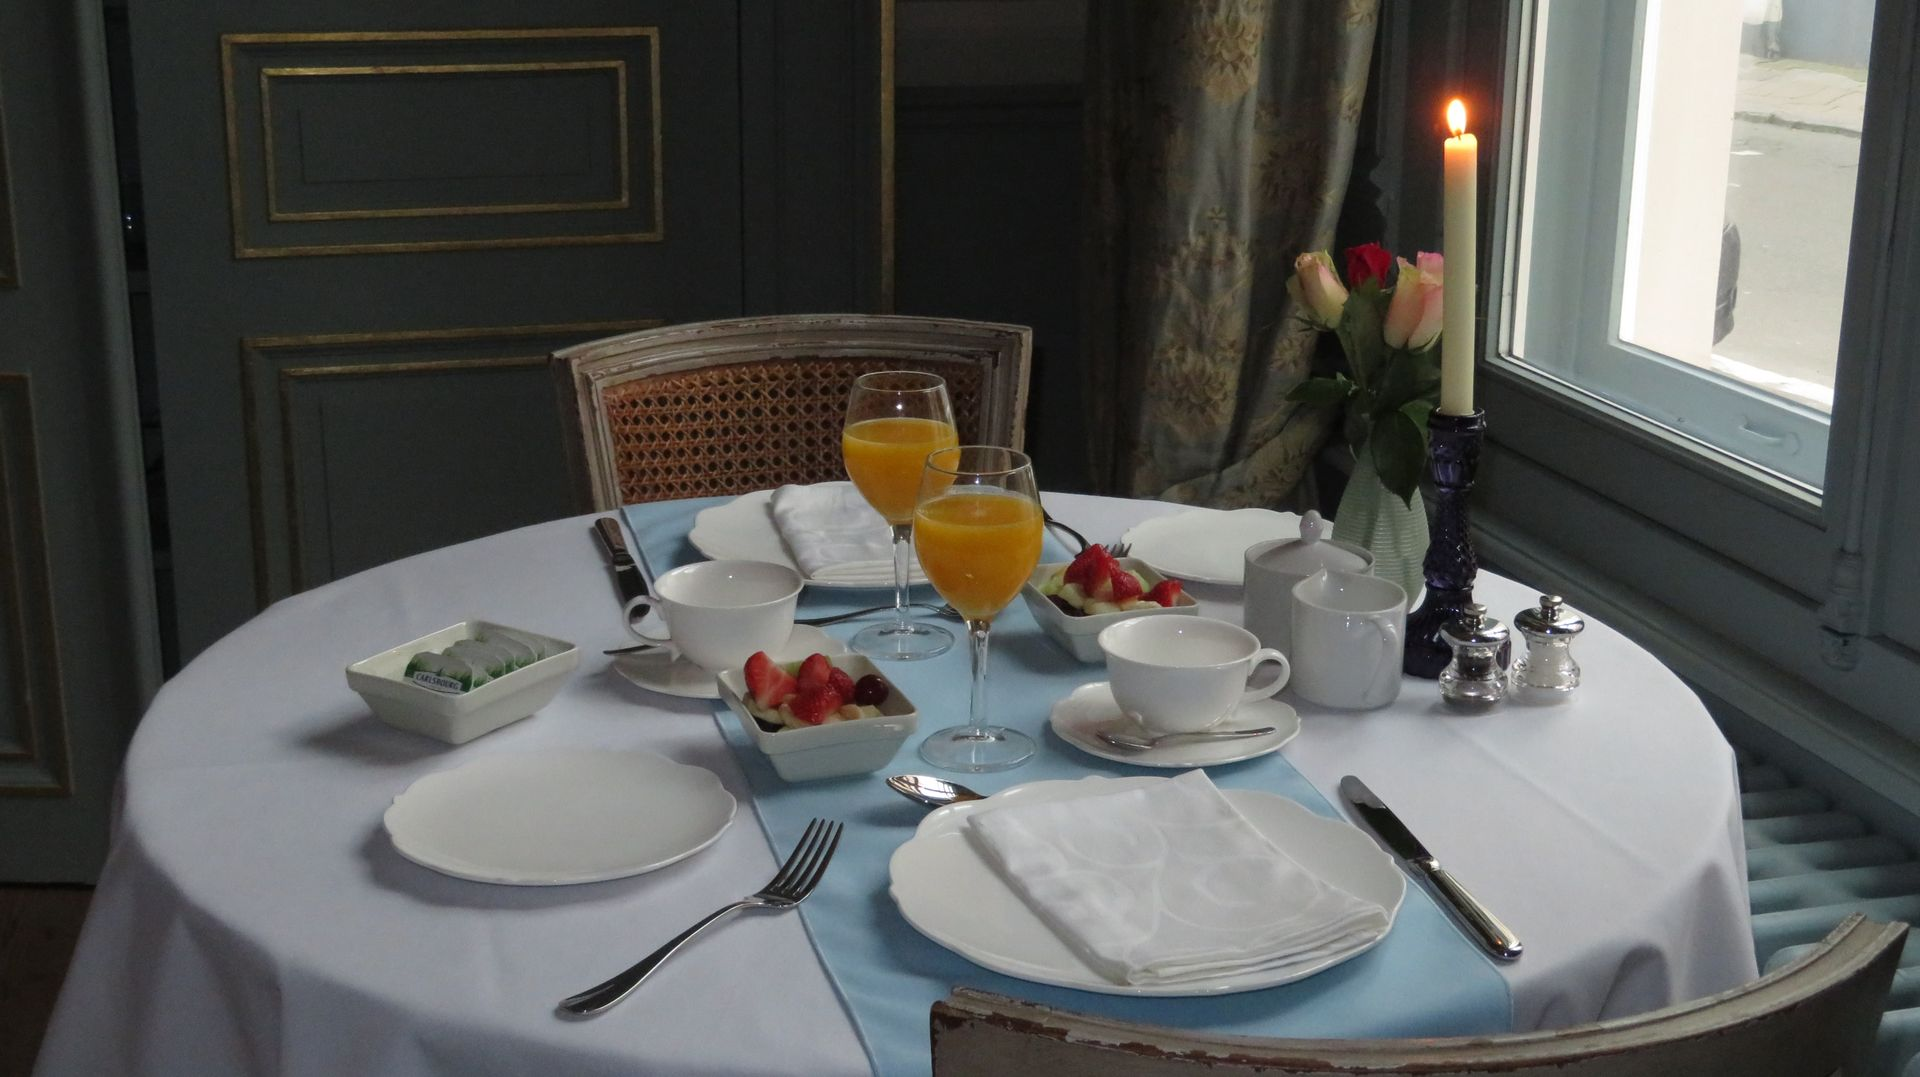 Bed and breakfast in Brugge